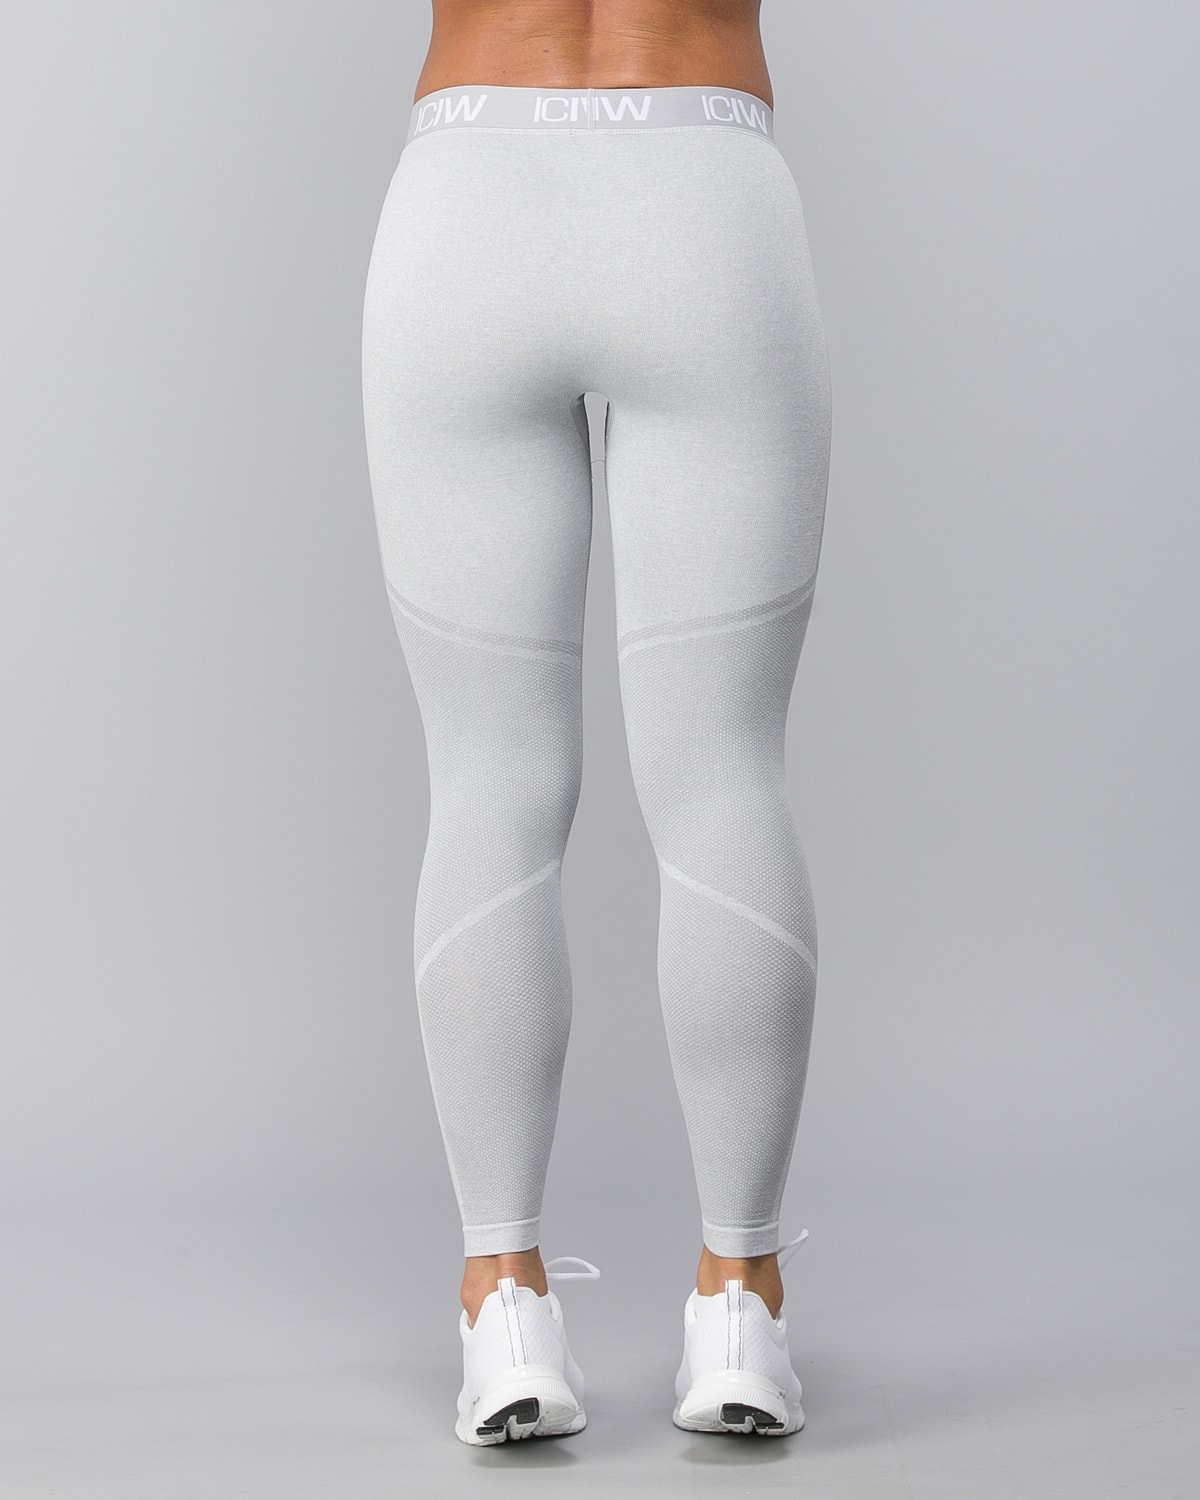 Icaniwill-Seamless Tights–Light Grey3